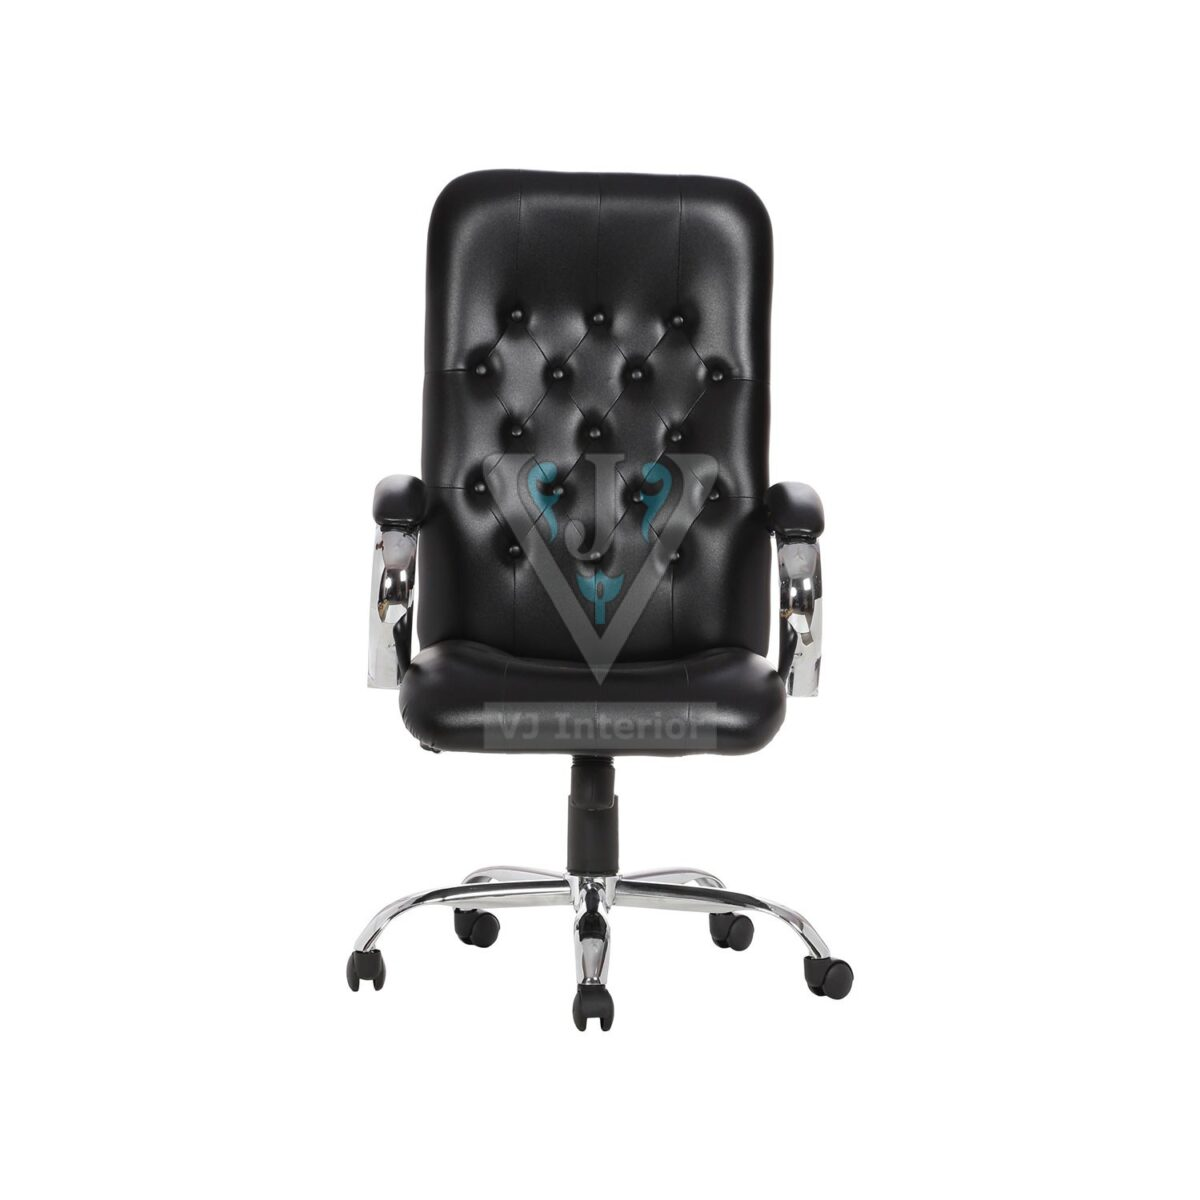 THE GRORO HB EXECUTIVE CHAIR BLACK